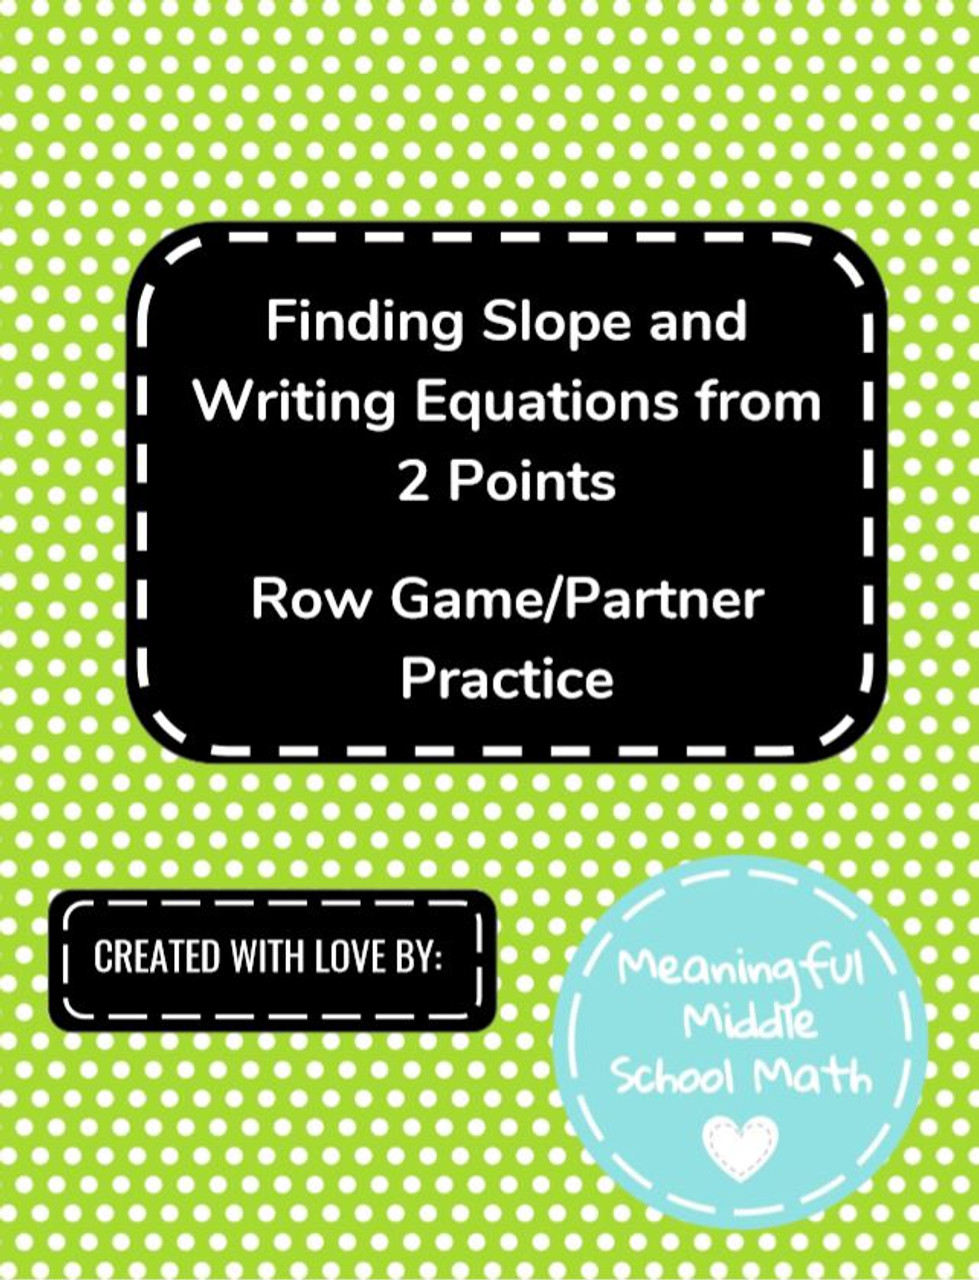 Partner Practice/Row Game Finding Slope and Linear Equations from 2 Points